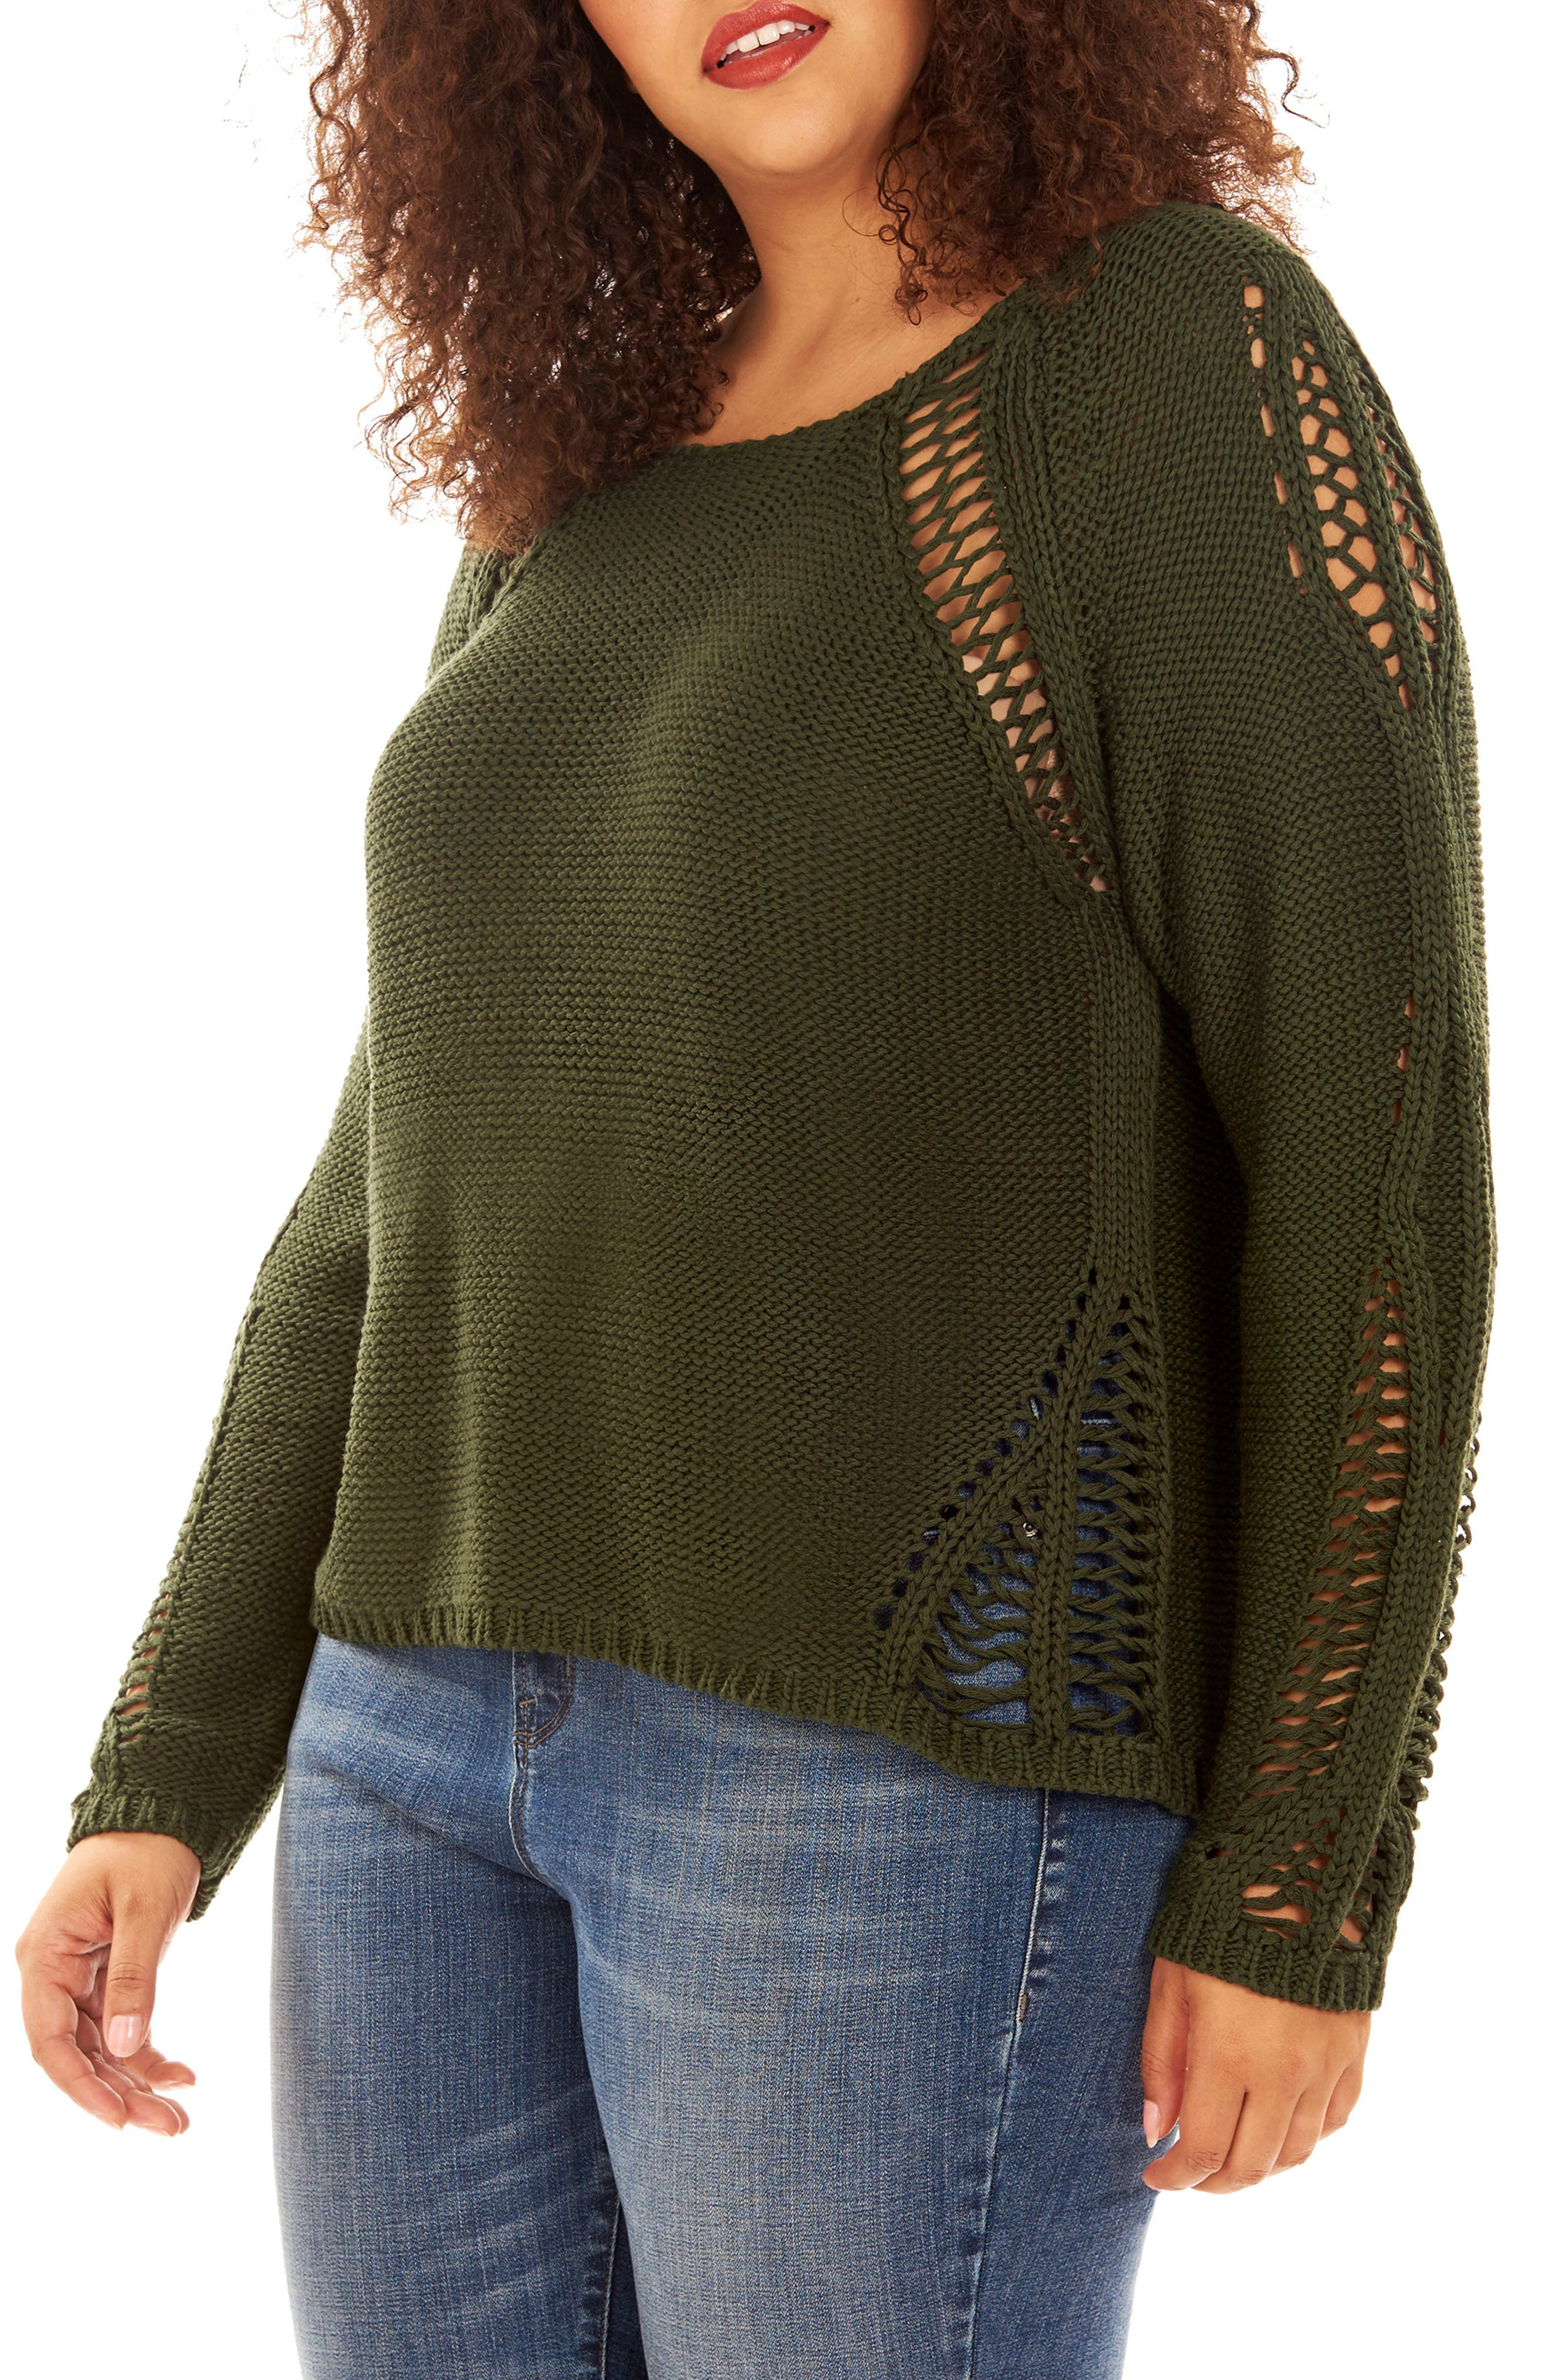 Alternate Image 1 Selected - Rebel Wilson x Angels Open Stitch Sweater (Plus Size)